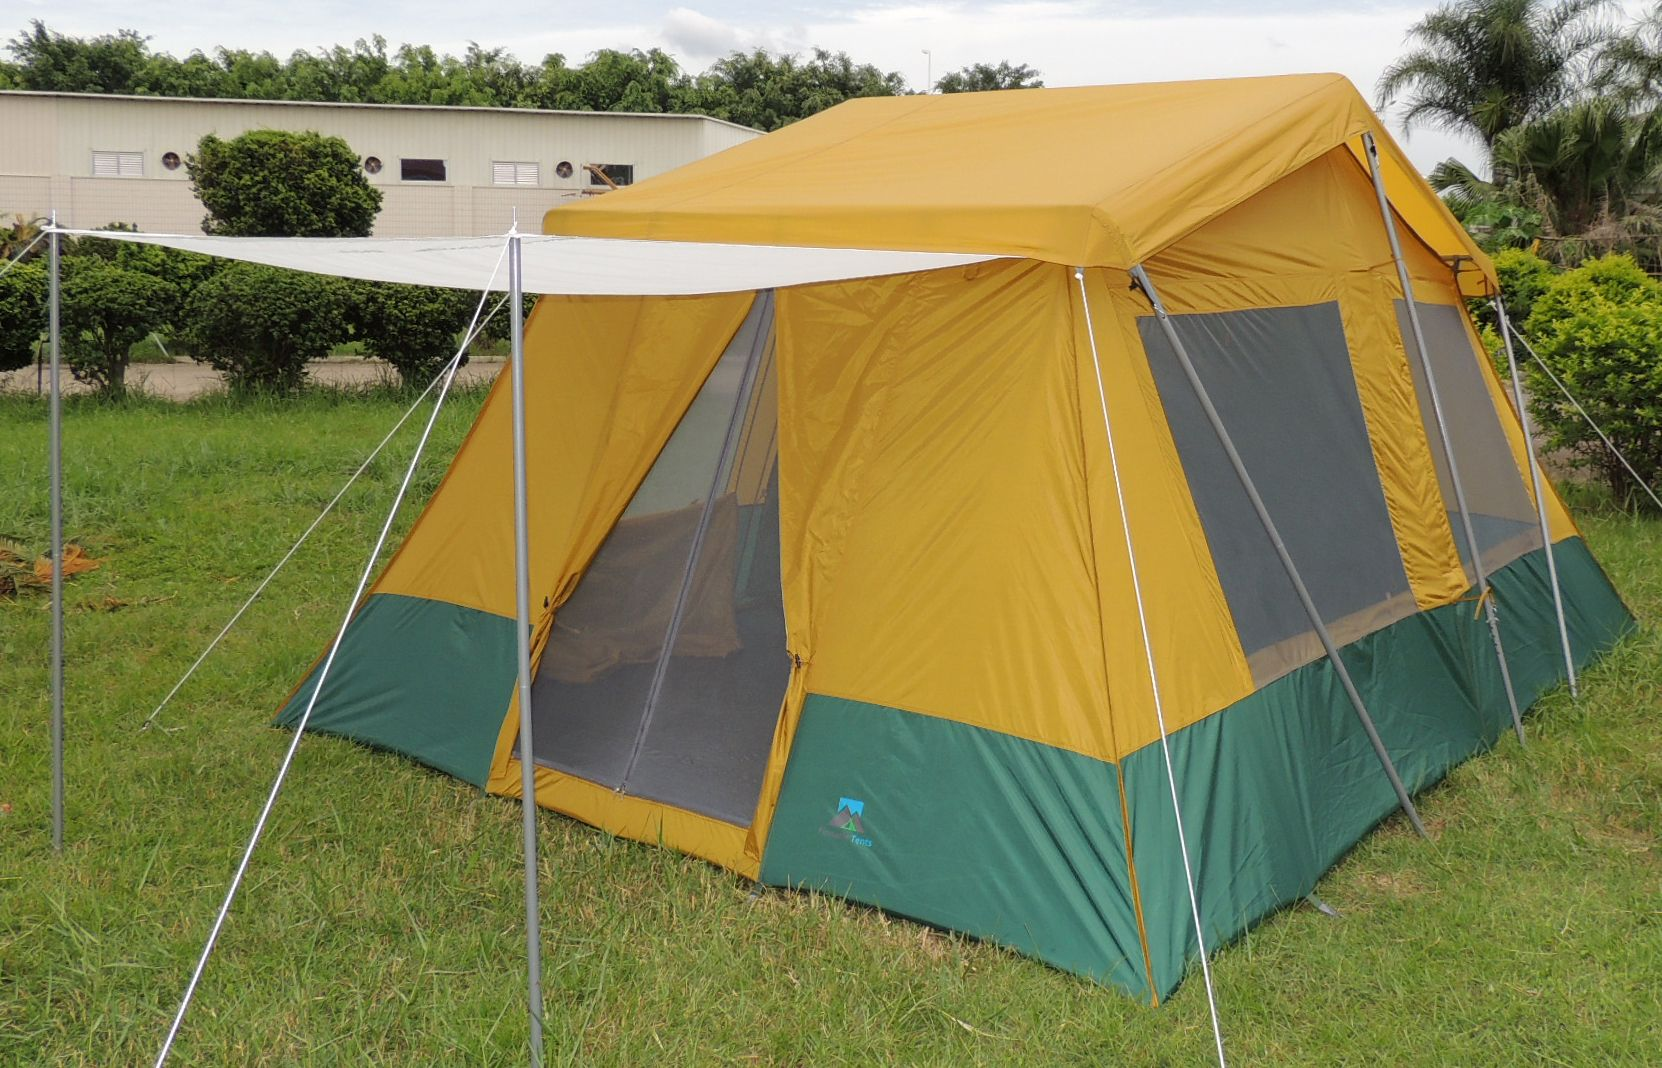 C&ing Tent Ideas - Coleman Instant Tent * Continue with the details at the image link. & Camping Tent Ideas - Kelty Camping Tents -- Want additional info ...